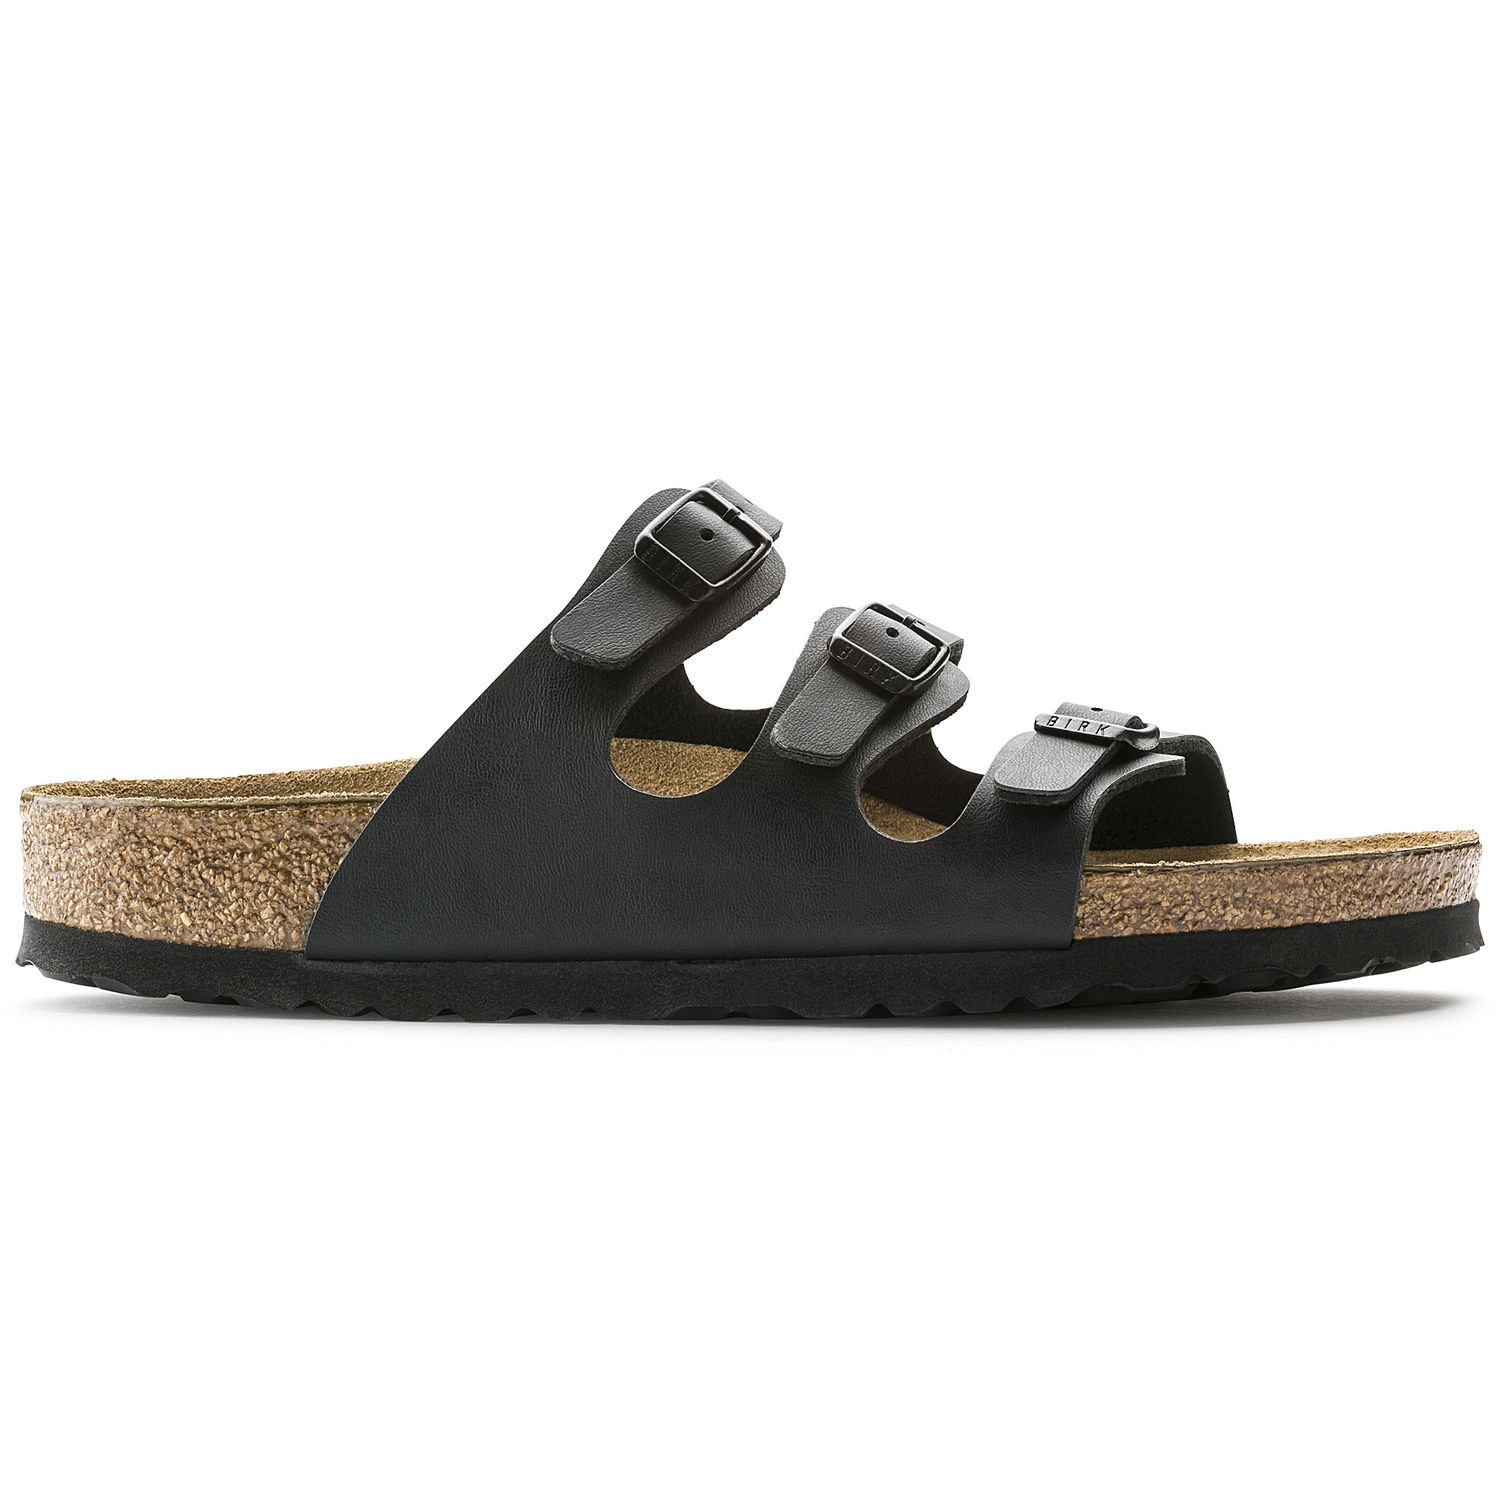 Image of   Sort Florida fra Birkenstock med smalle remme og narrow fit - 39